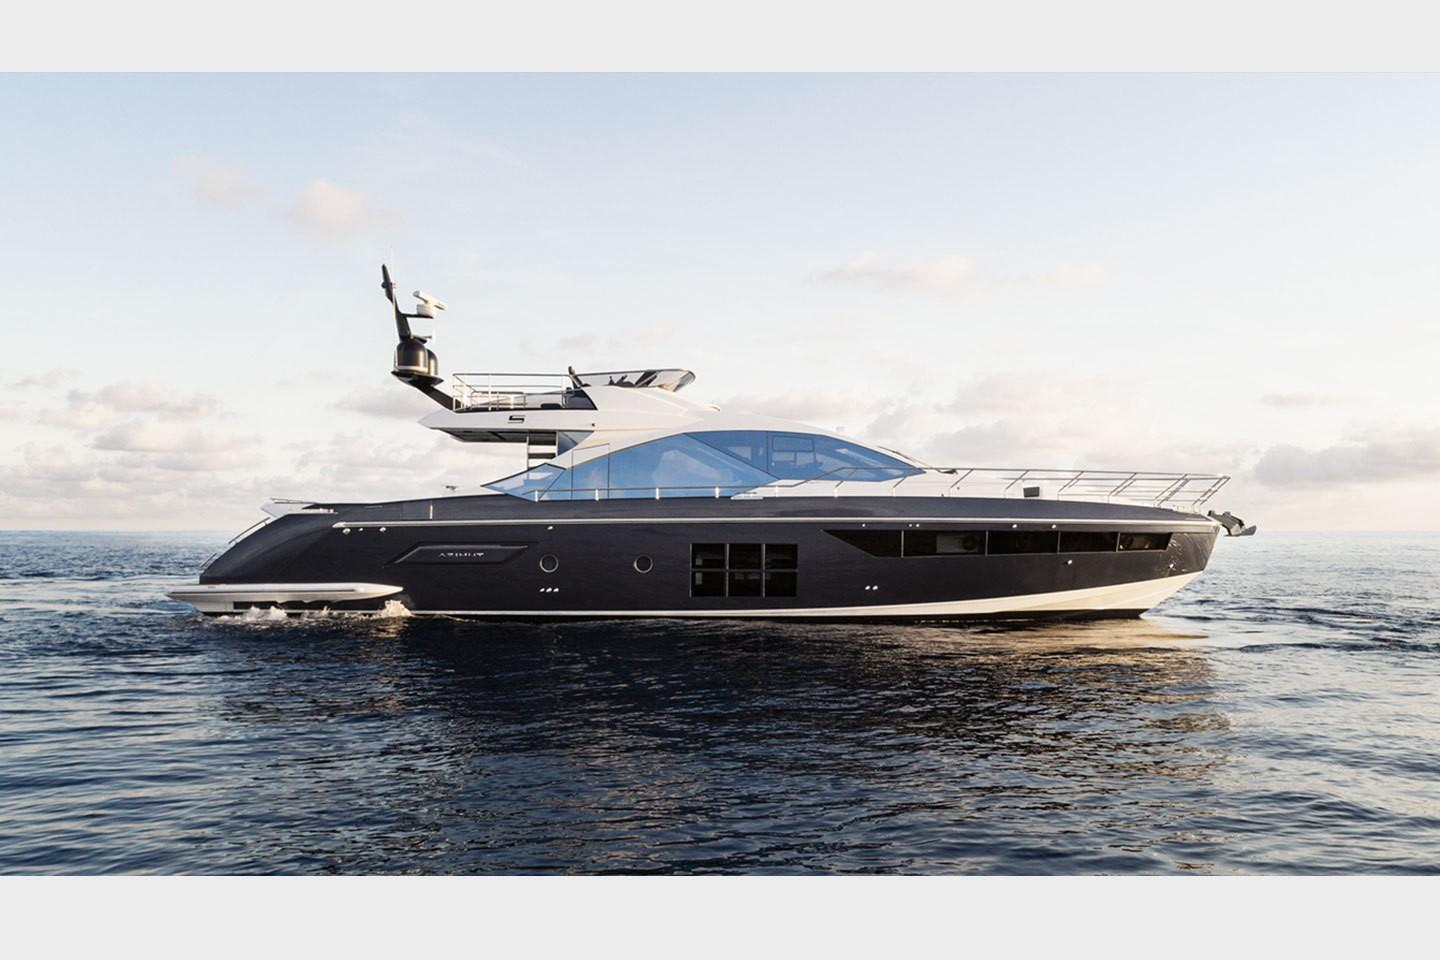 Thumbnail 1 for 2020 Azimut S7 COUPE